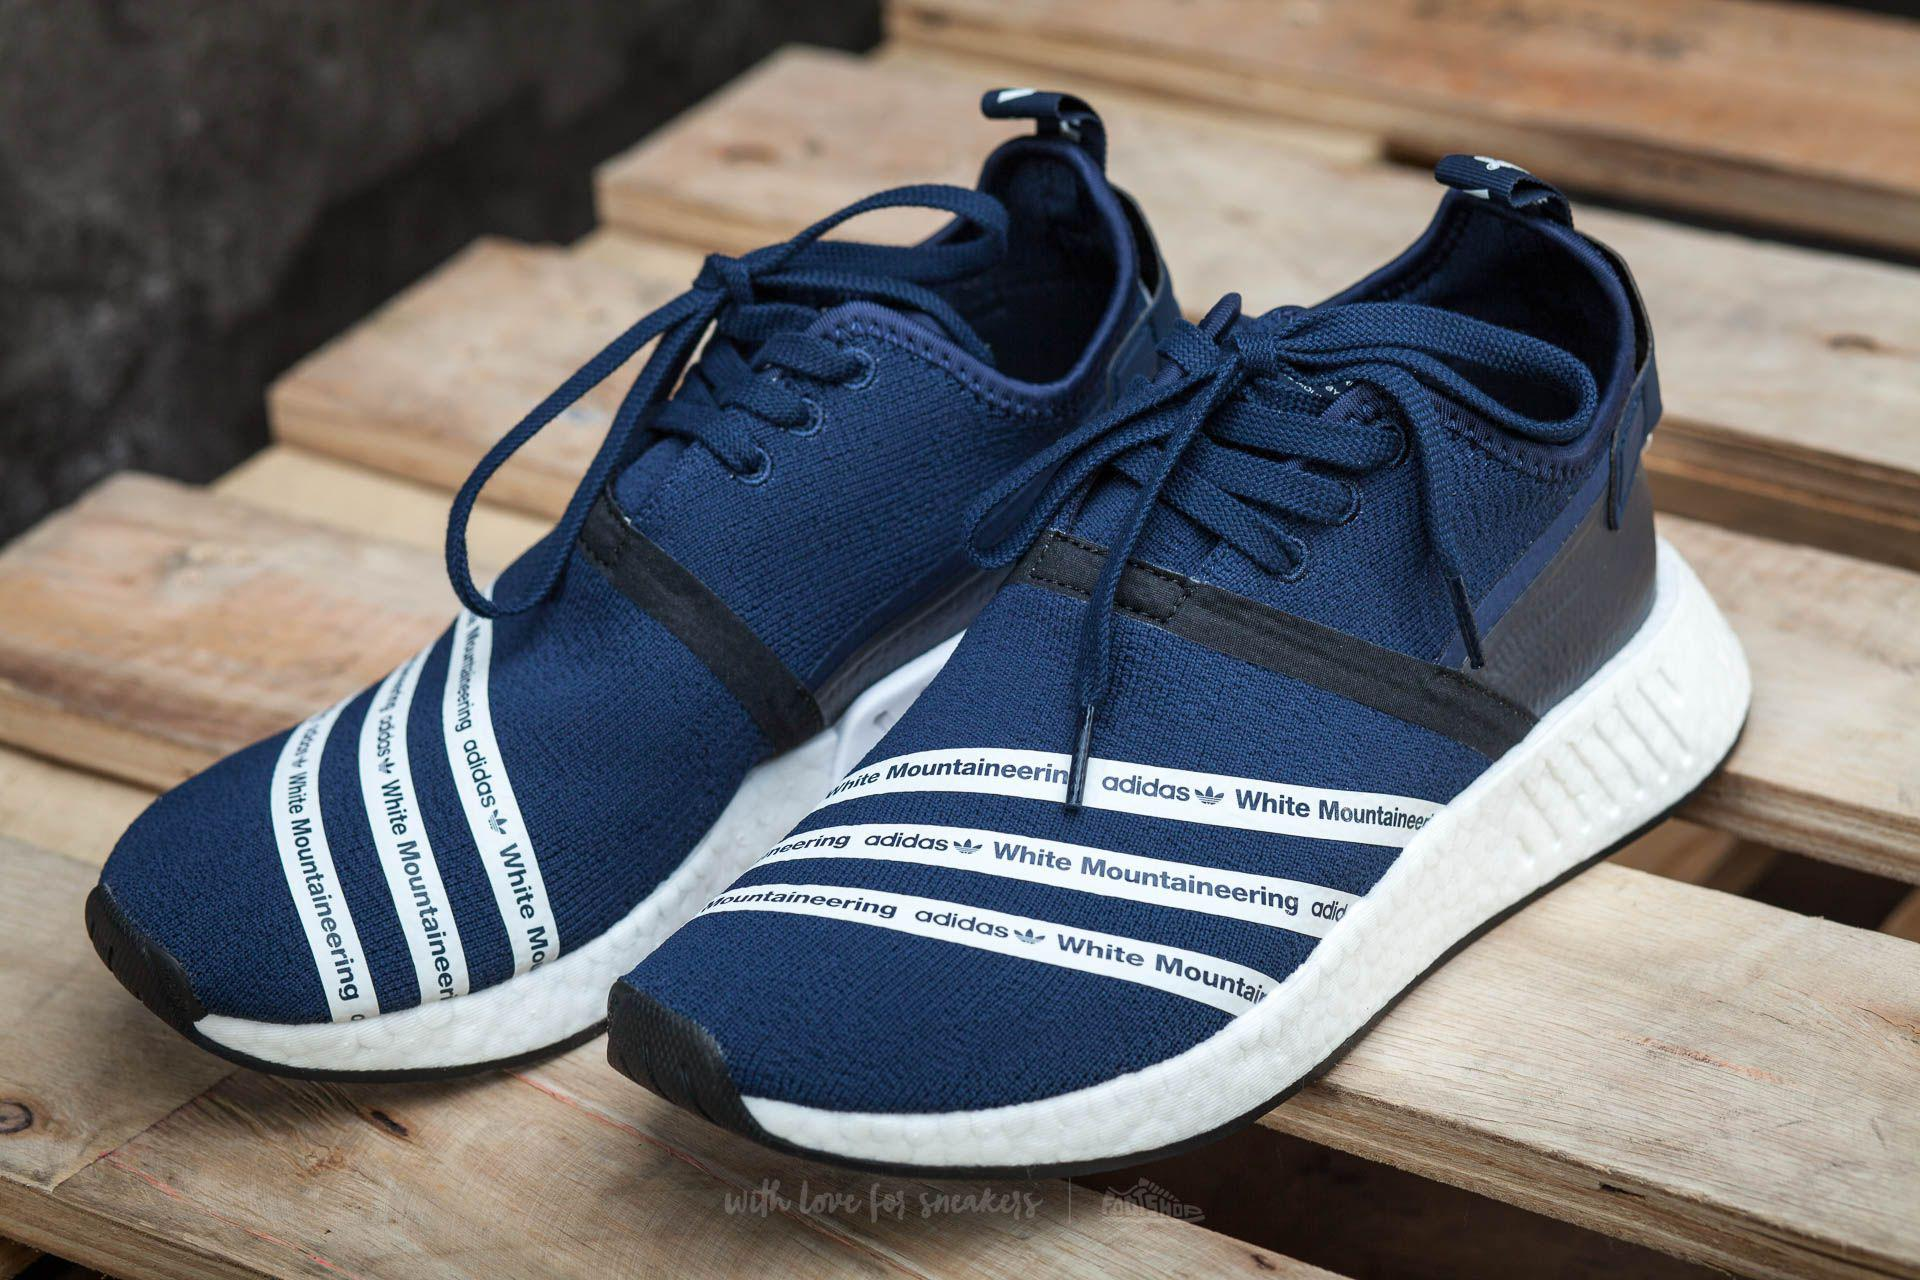 07f984ac66c44 Lyst - adidas Originals Adidas X White Mountaineering Nmd R2 ...